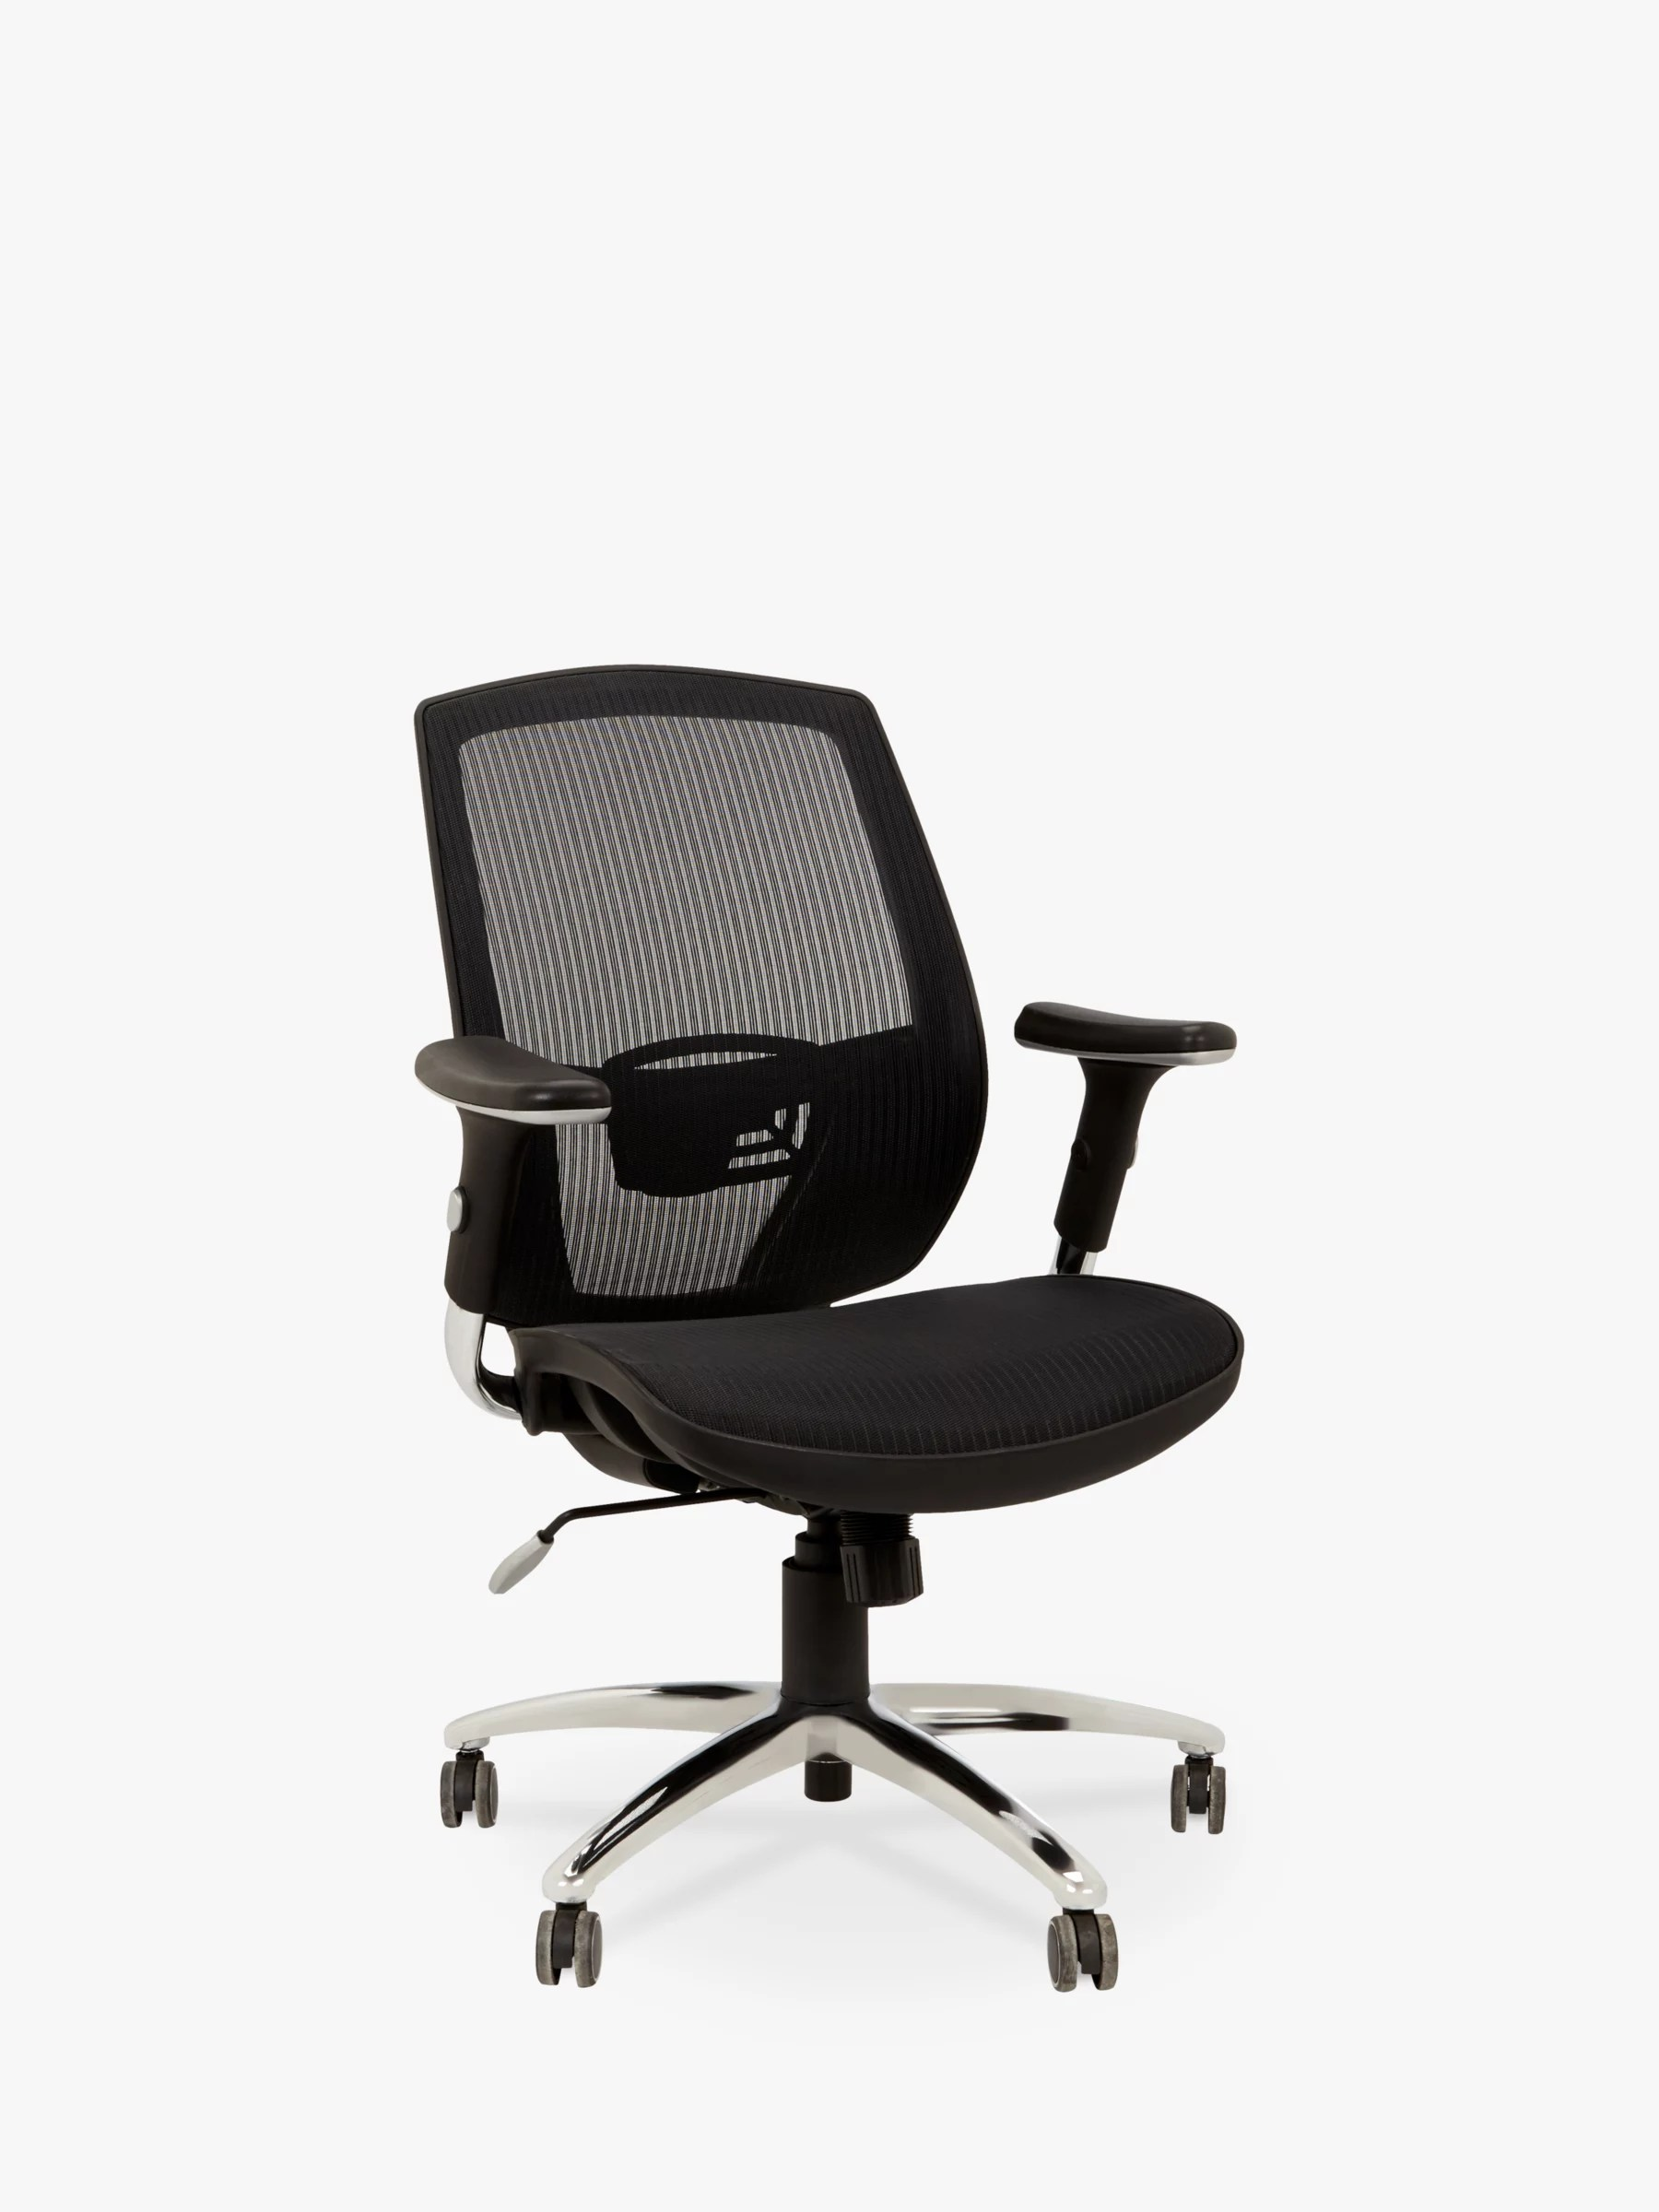 Ergonomic Chair John Lewis And Partners Murray Ergonomic Office Chair Black